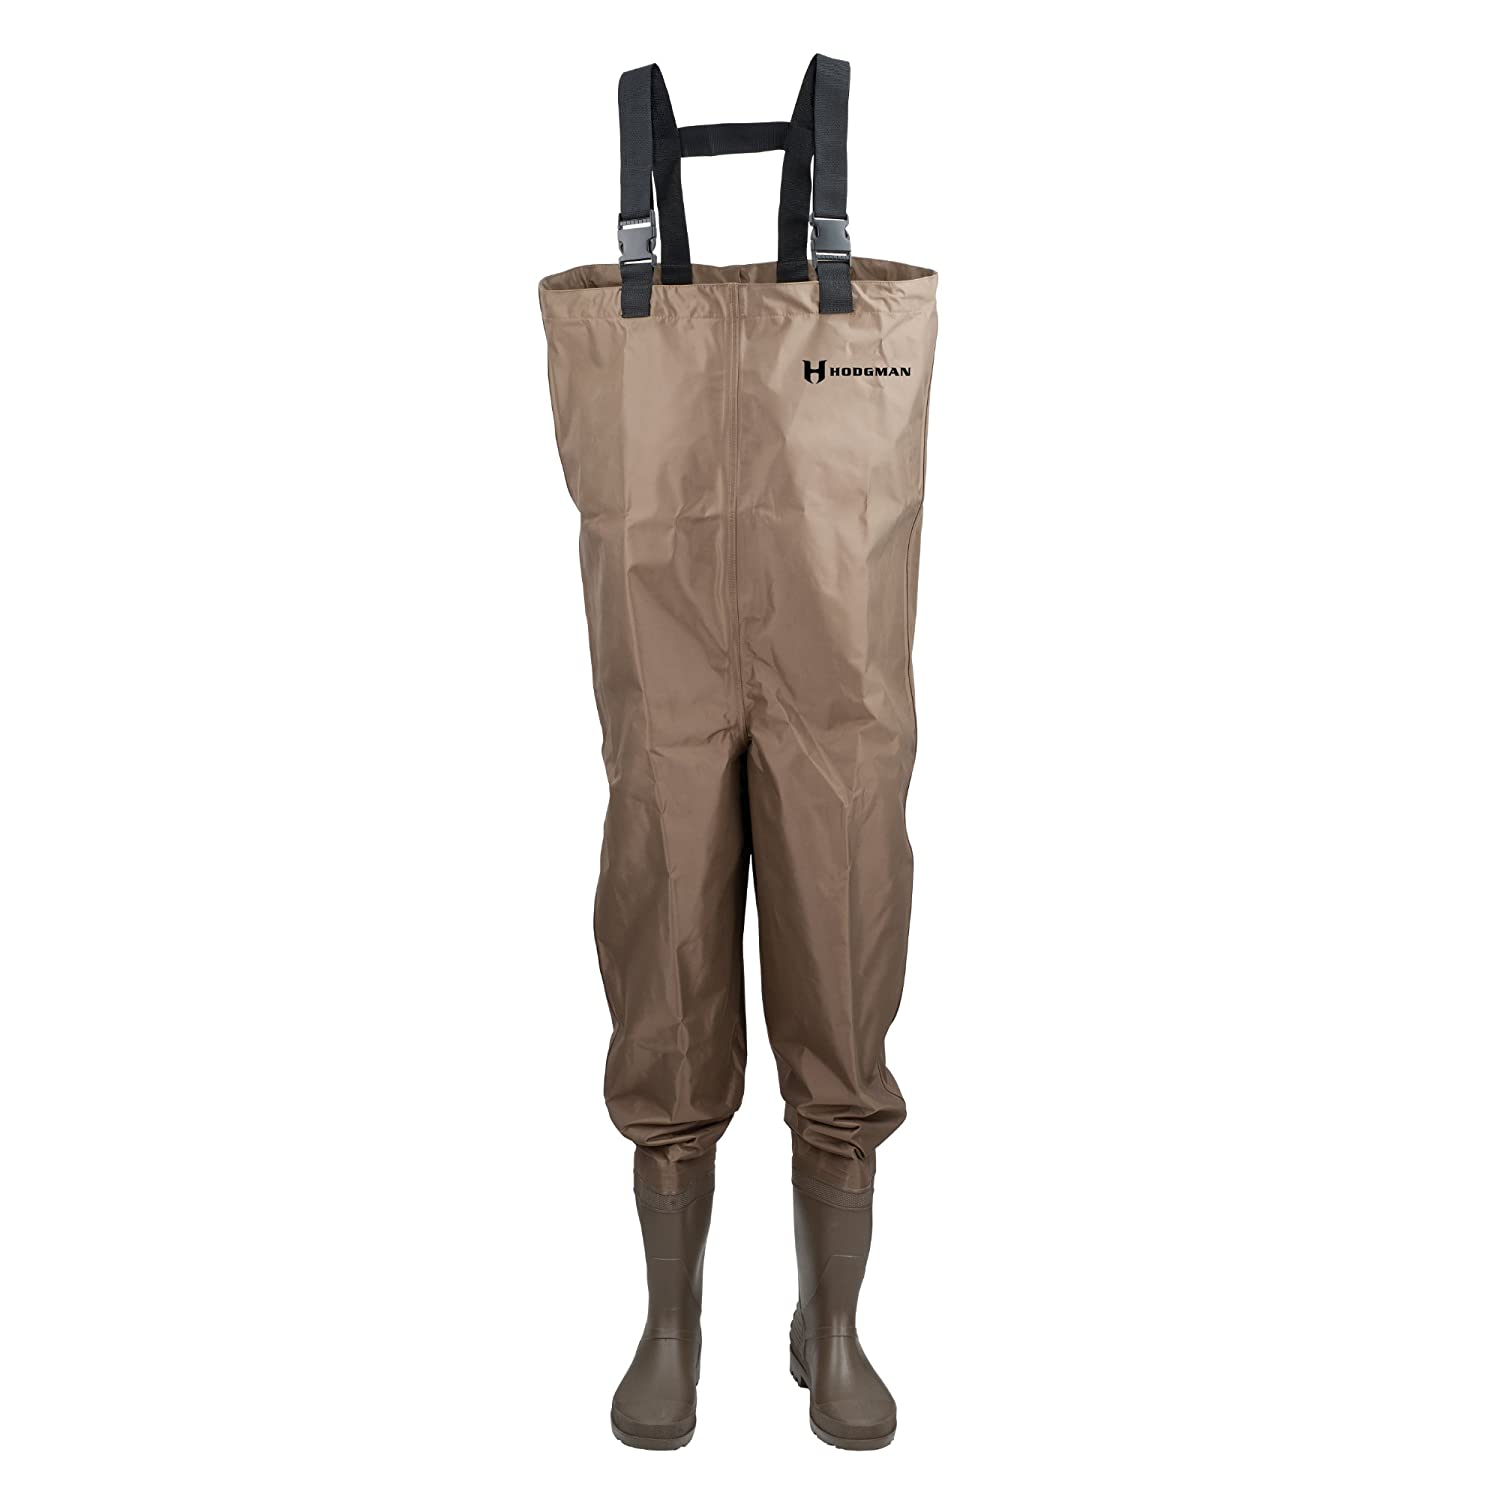 The Best Fishing Waders Reviews - Top Picks & Buyer's Guide 4